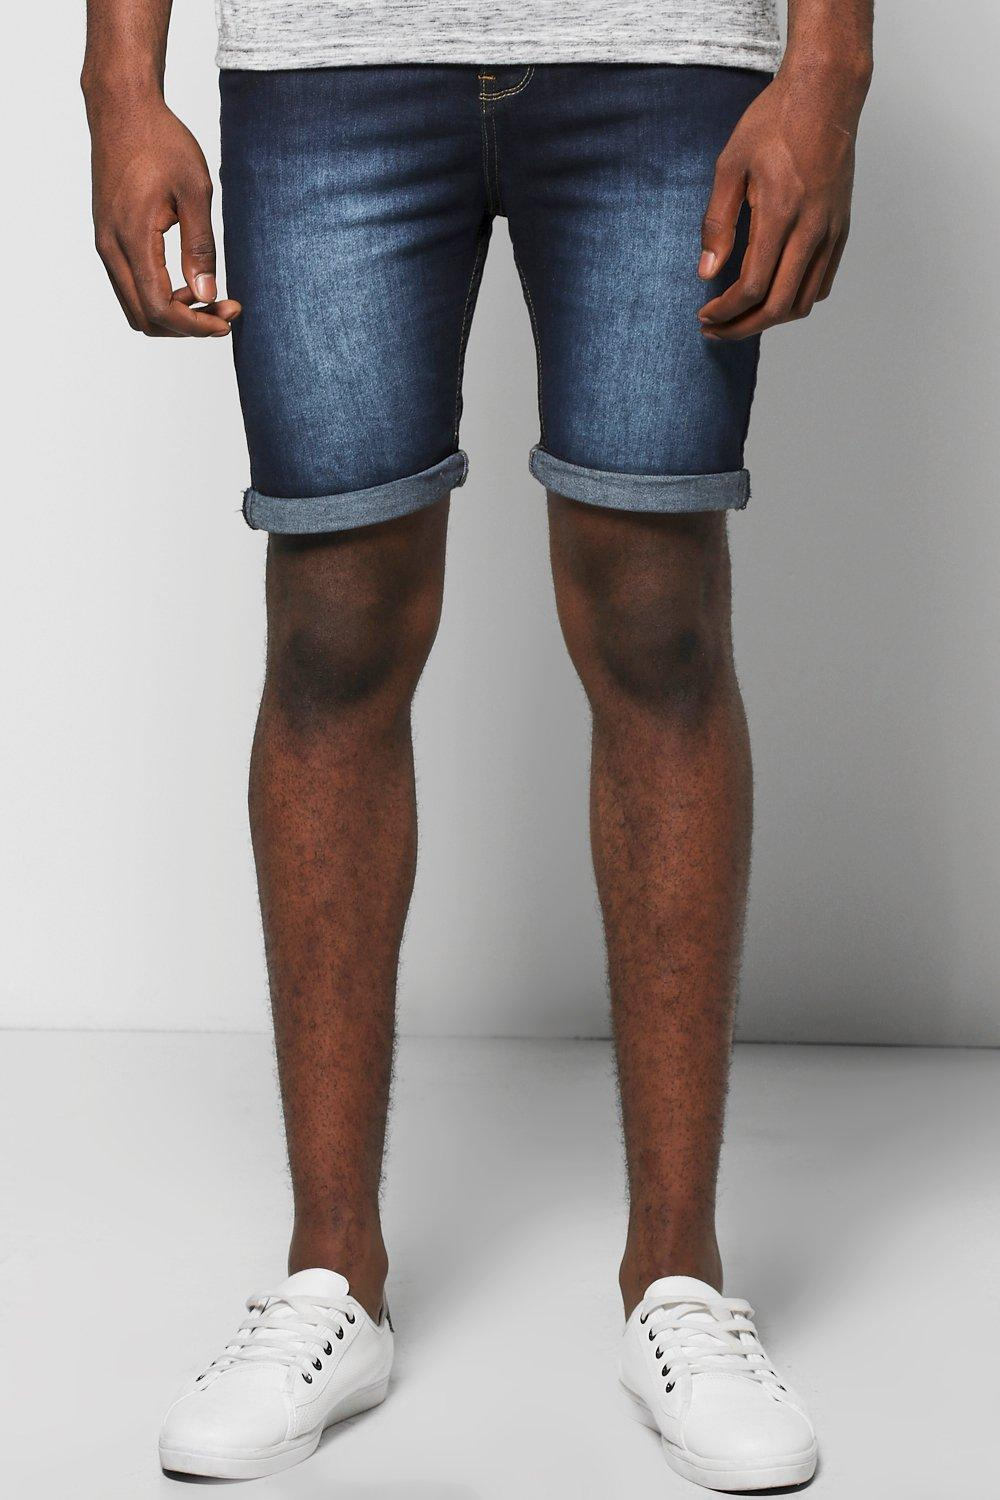 Skinny Fit Indigo Wash Denim Shorts in Long Length